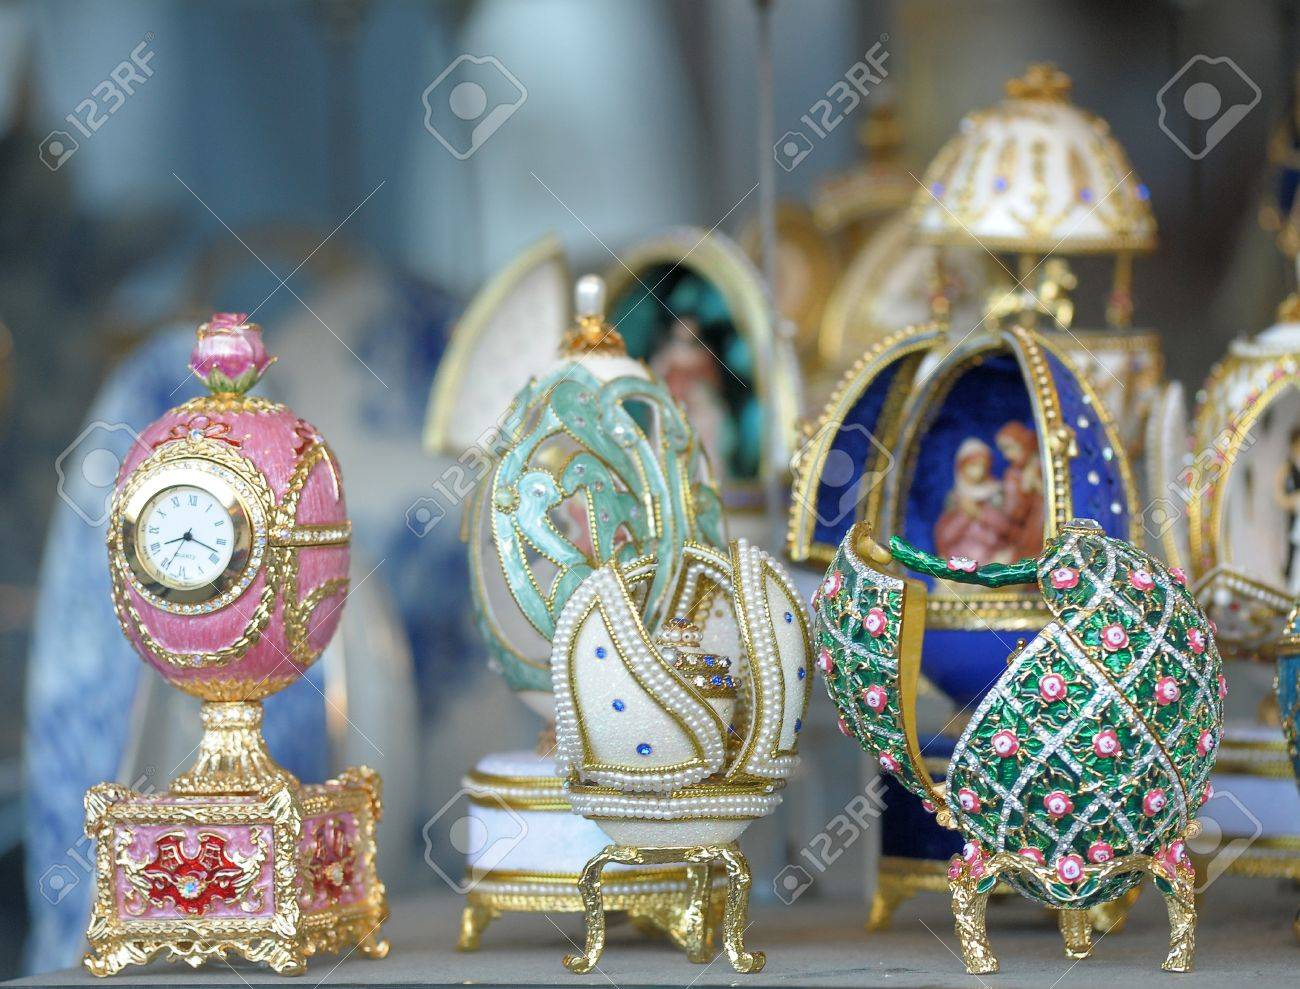 Group Faberge eggs Stock Photo - 14167921